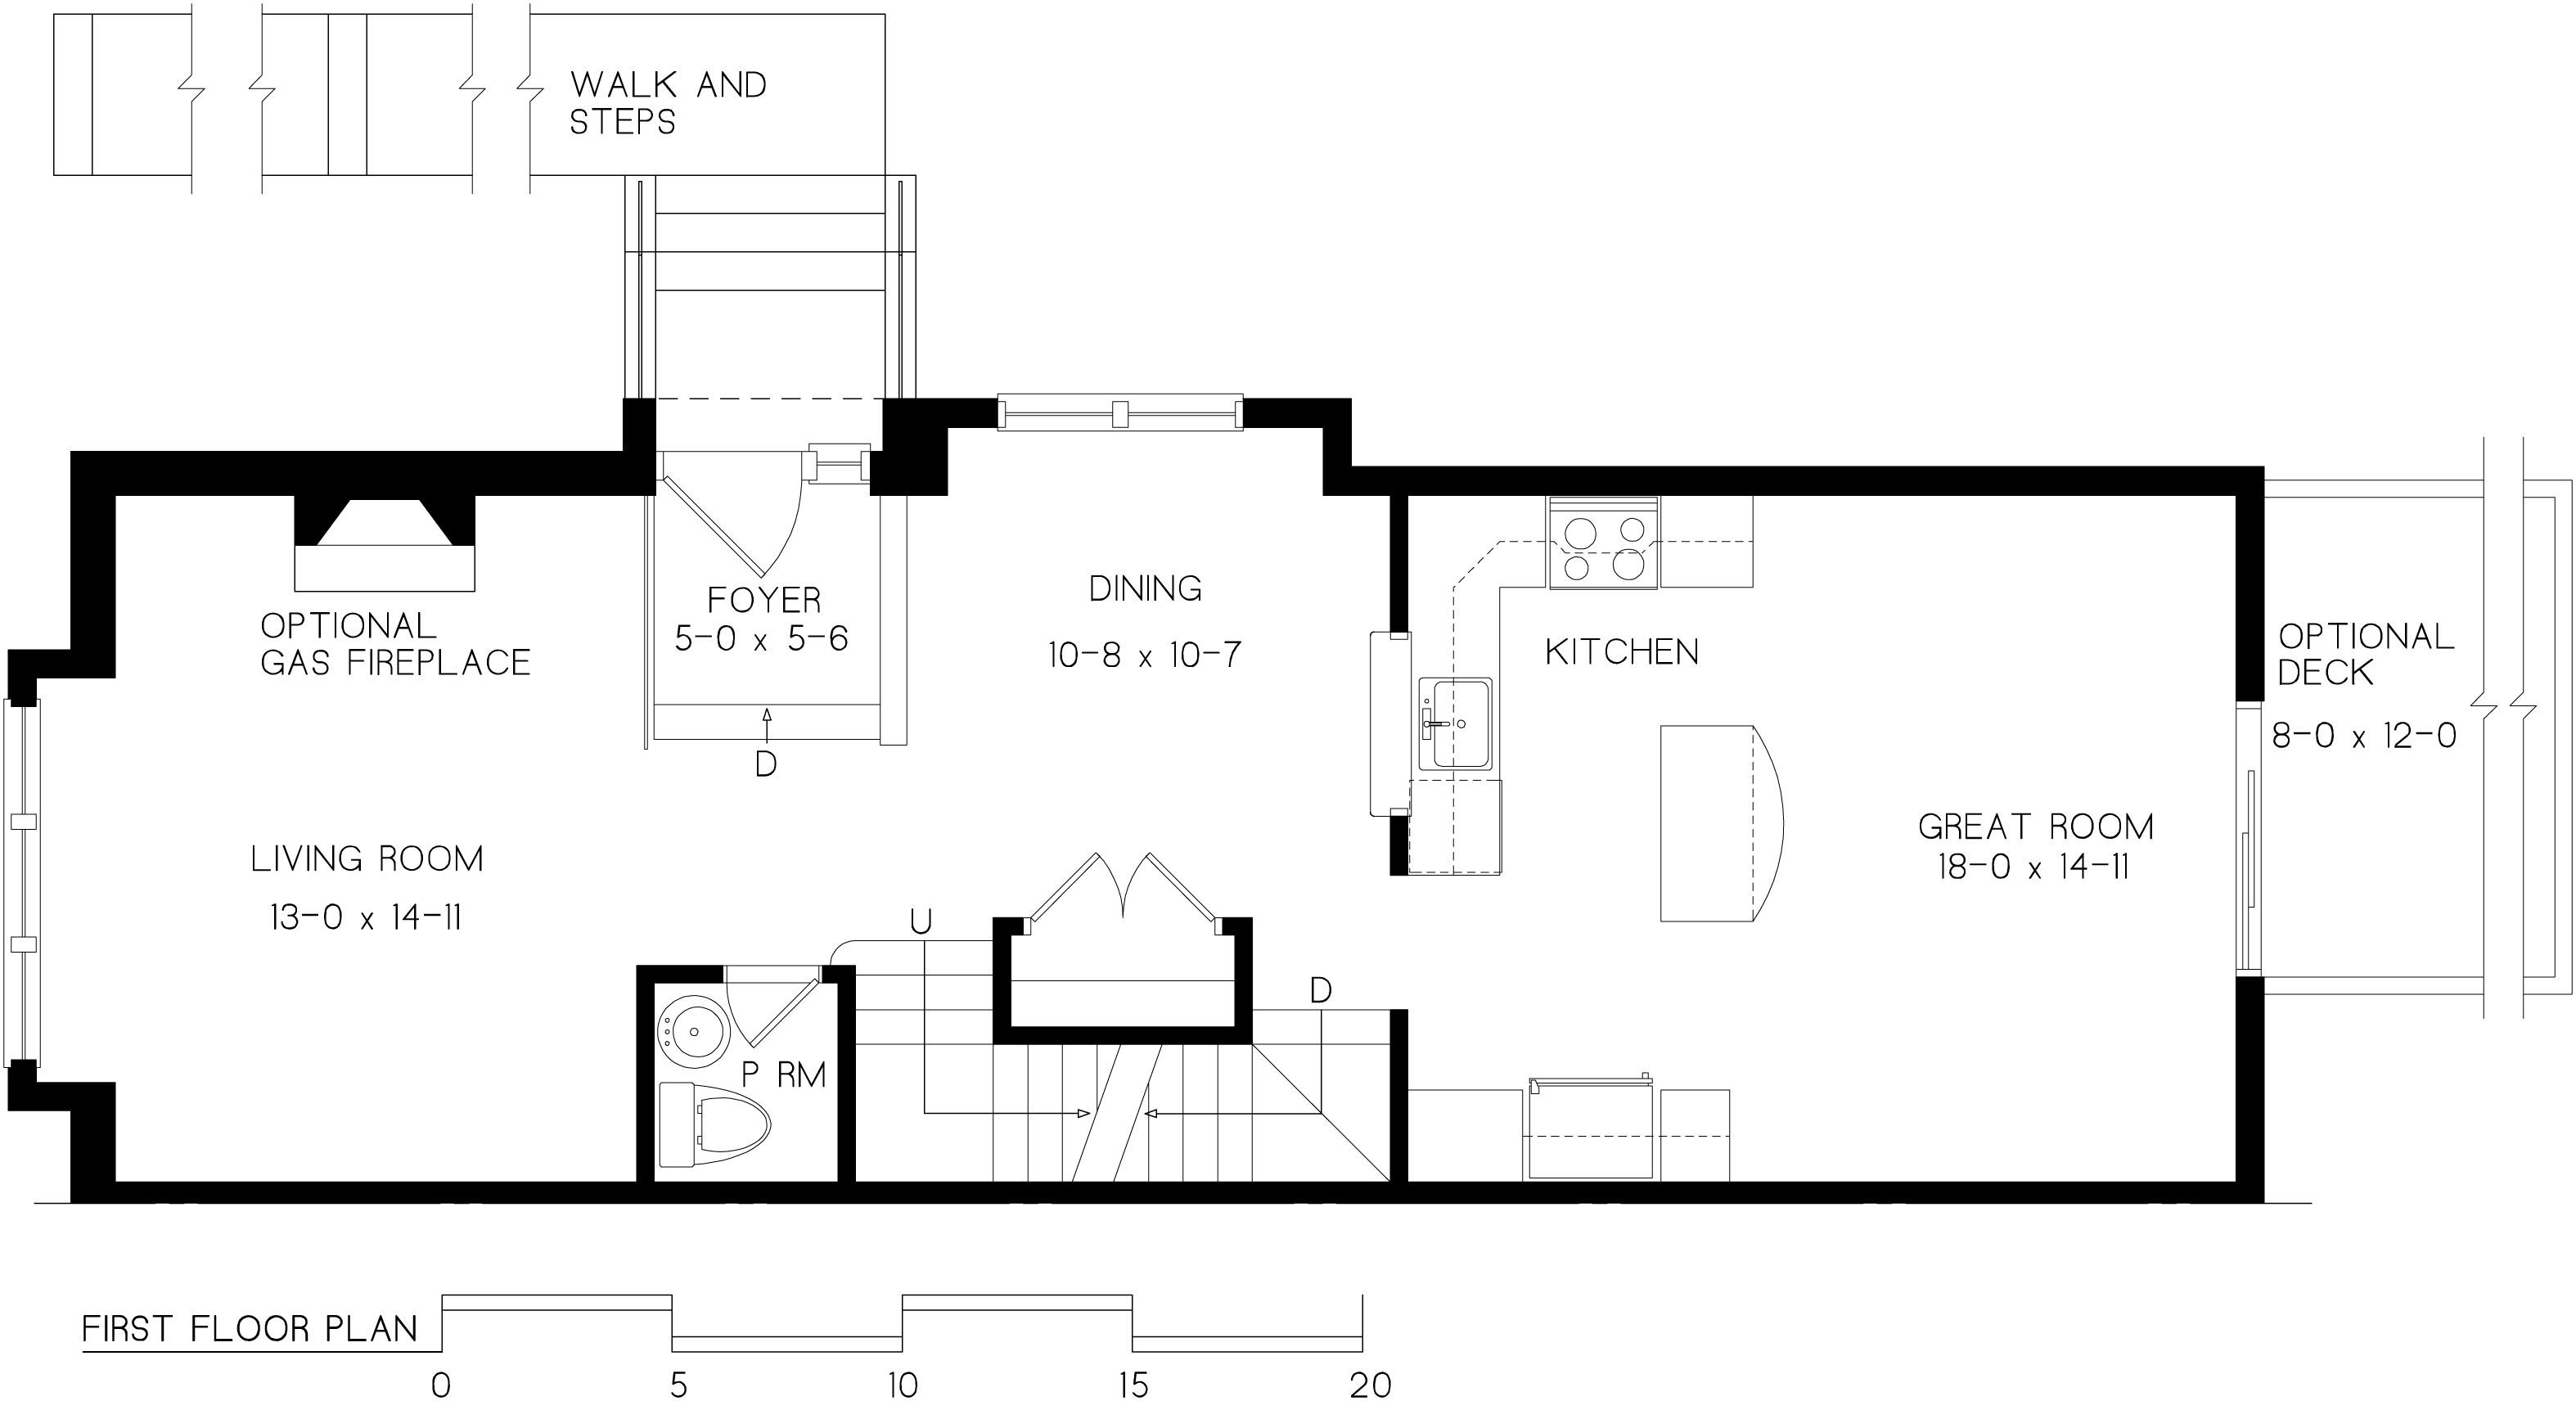 Kingsley court floorplans for the new carriage house for Carriage house floor plans